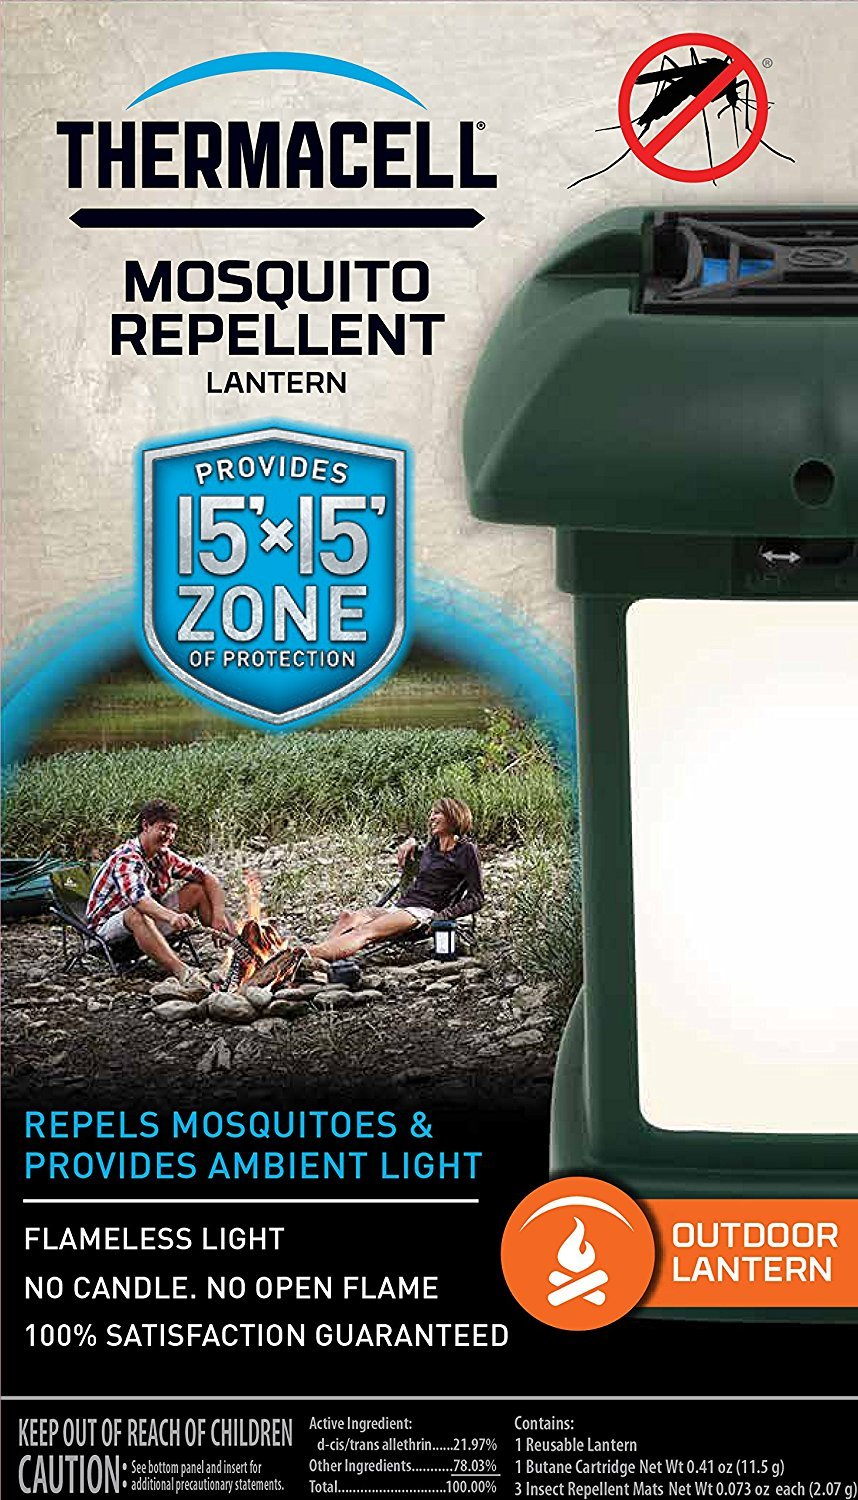 ThermacellMR-9L OutdoorMosquitoRepellers/Lanterns (6) & Twelve Refill Packs Bundle (72 Mats, 24 Cartridges) by Thermacell (Image #2)